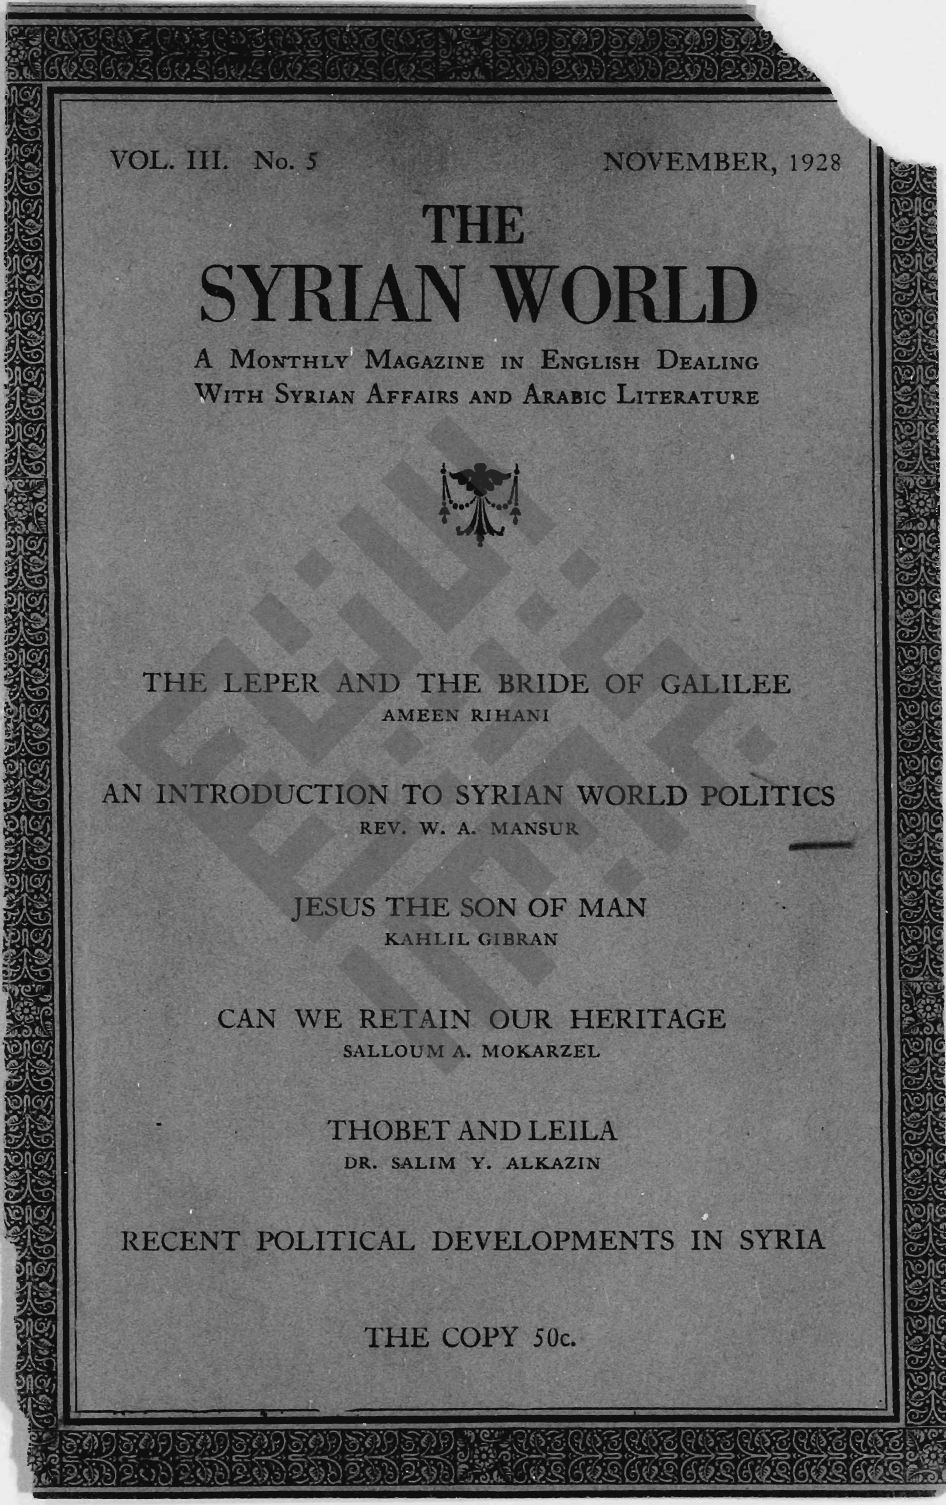 A Man from Lebanon Nineteen Centuries Afterward, The Syrian World, 3, 5, November 1928, 21–26